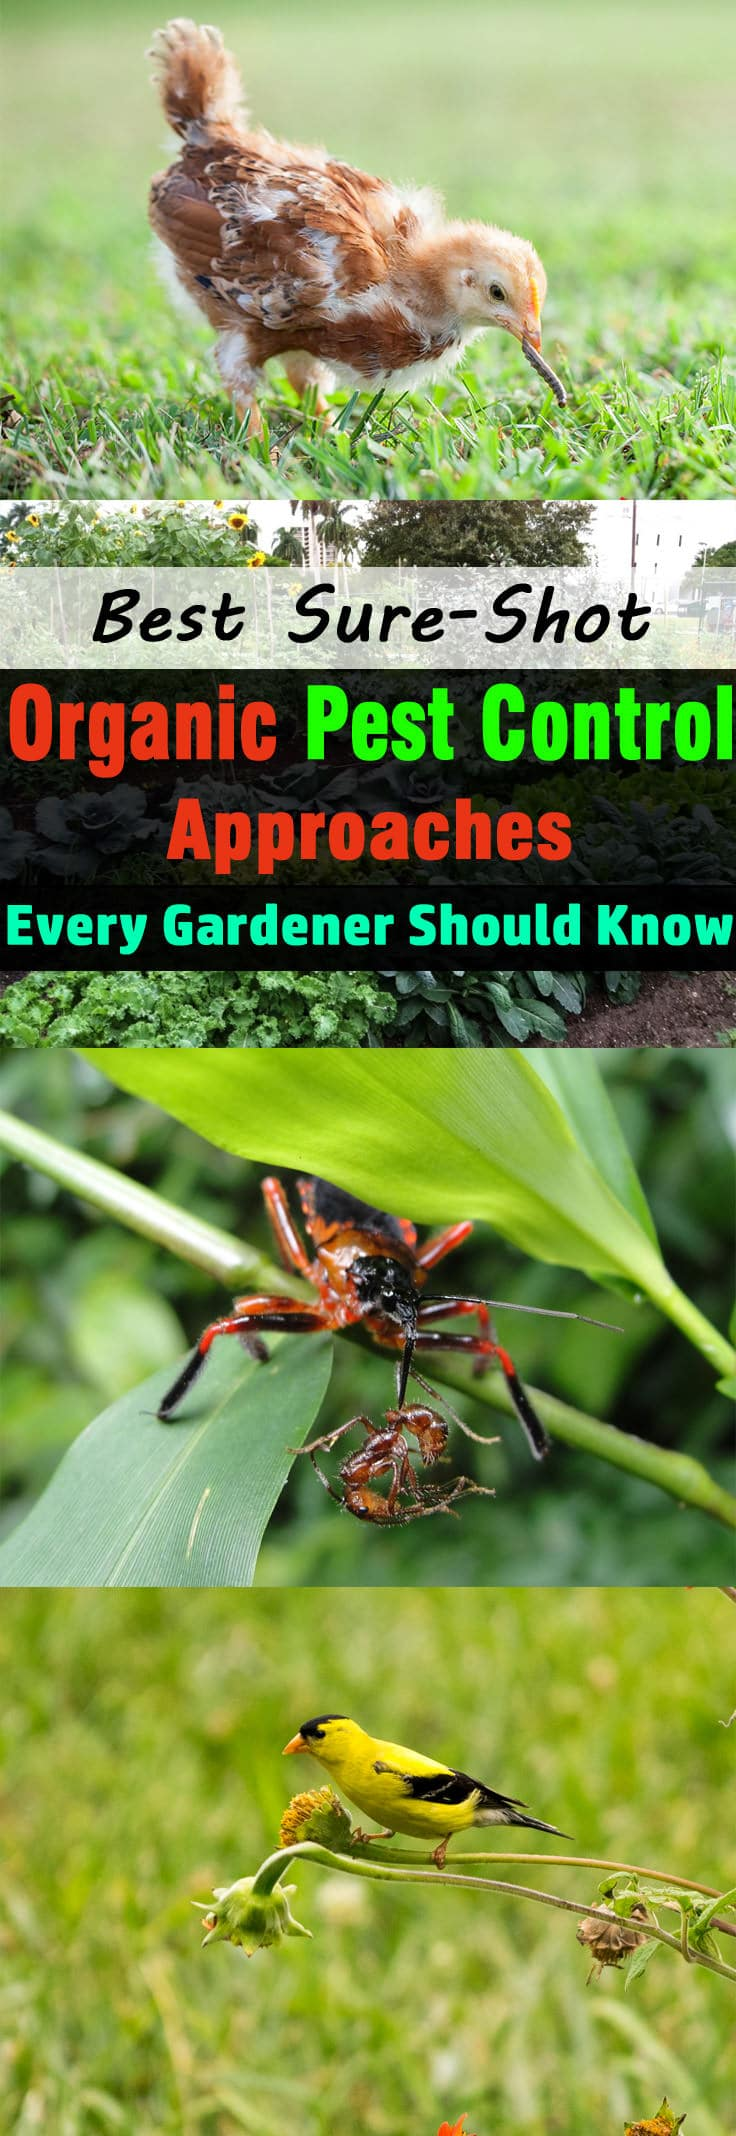 Getting rid of pests ORGANICALLY is the most challenging task for every gardener. So, here we're sharing 10 Sure-shot organic pest control approaches to make things easier.